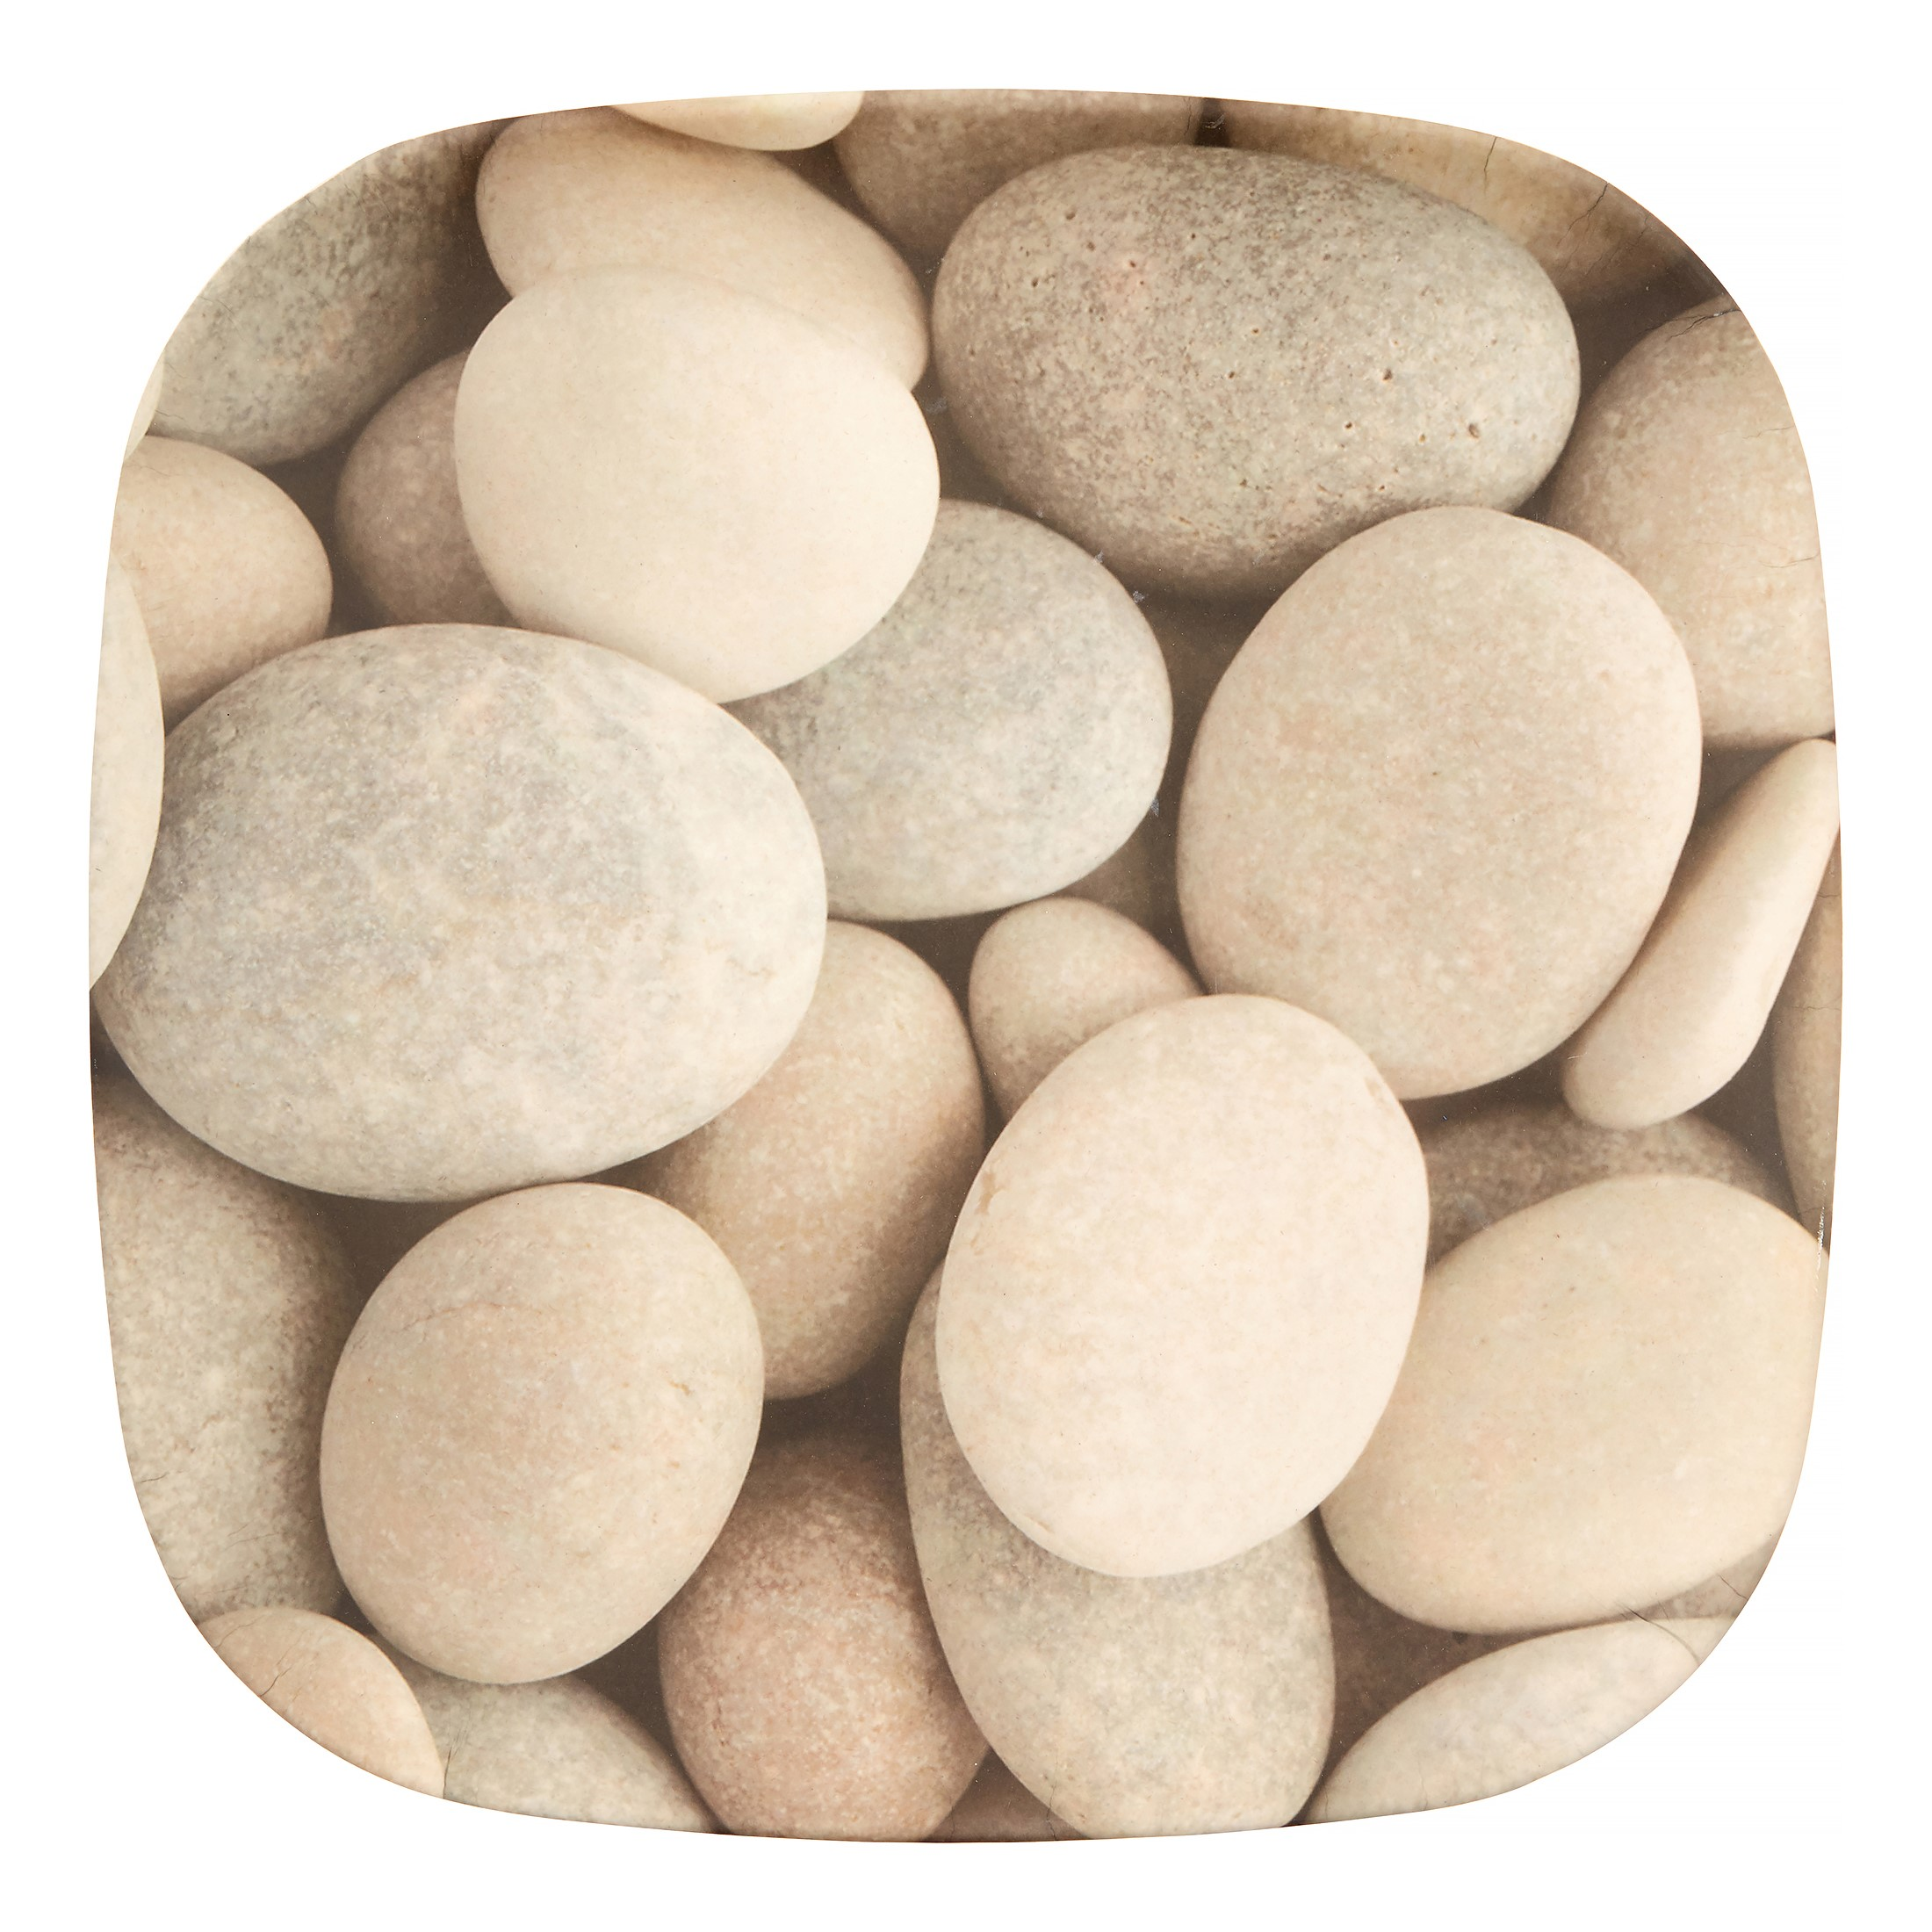 Bamboozle 11 In. Dinner Plate Set (Set of 4), Pebble